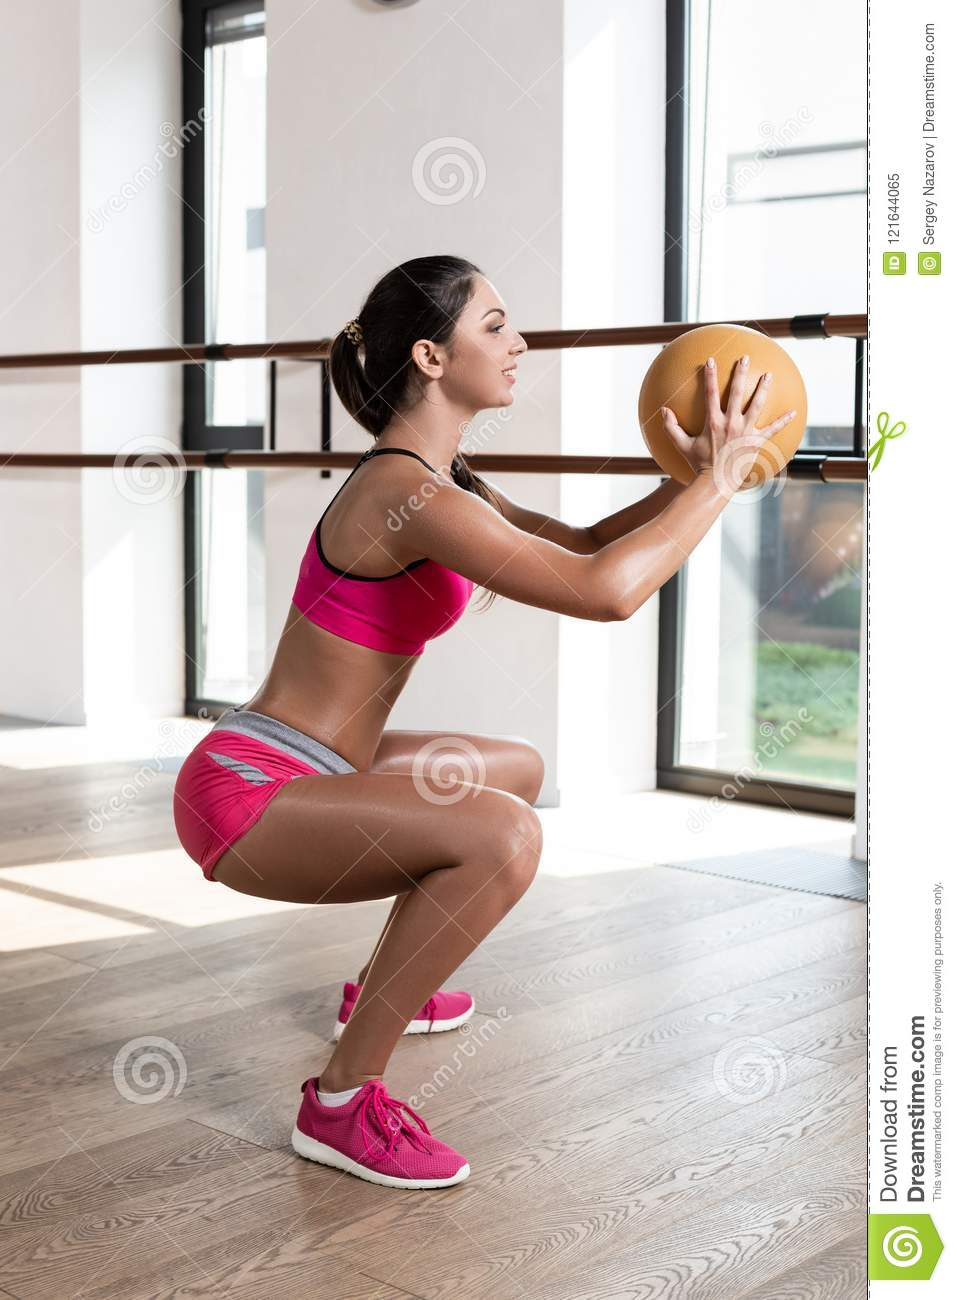 Strong Female Squatting On Fitness Mat With Weight Medicine Ball In